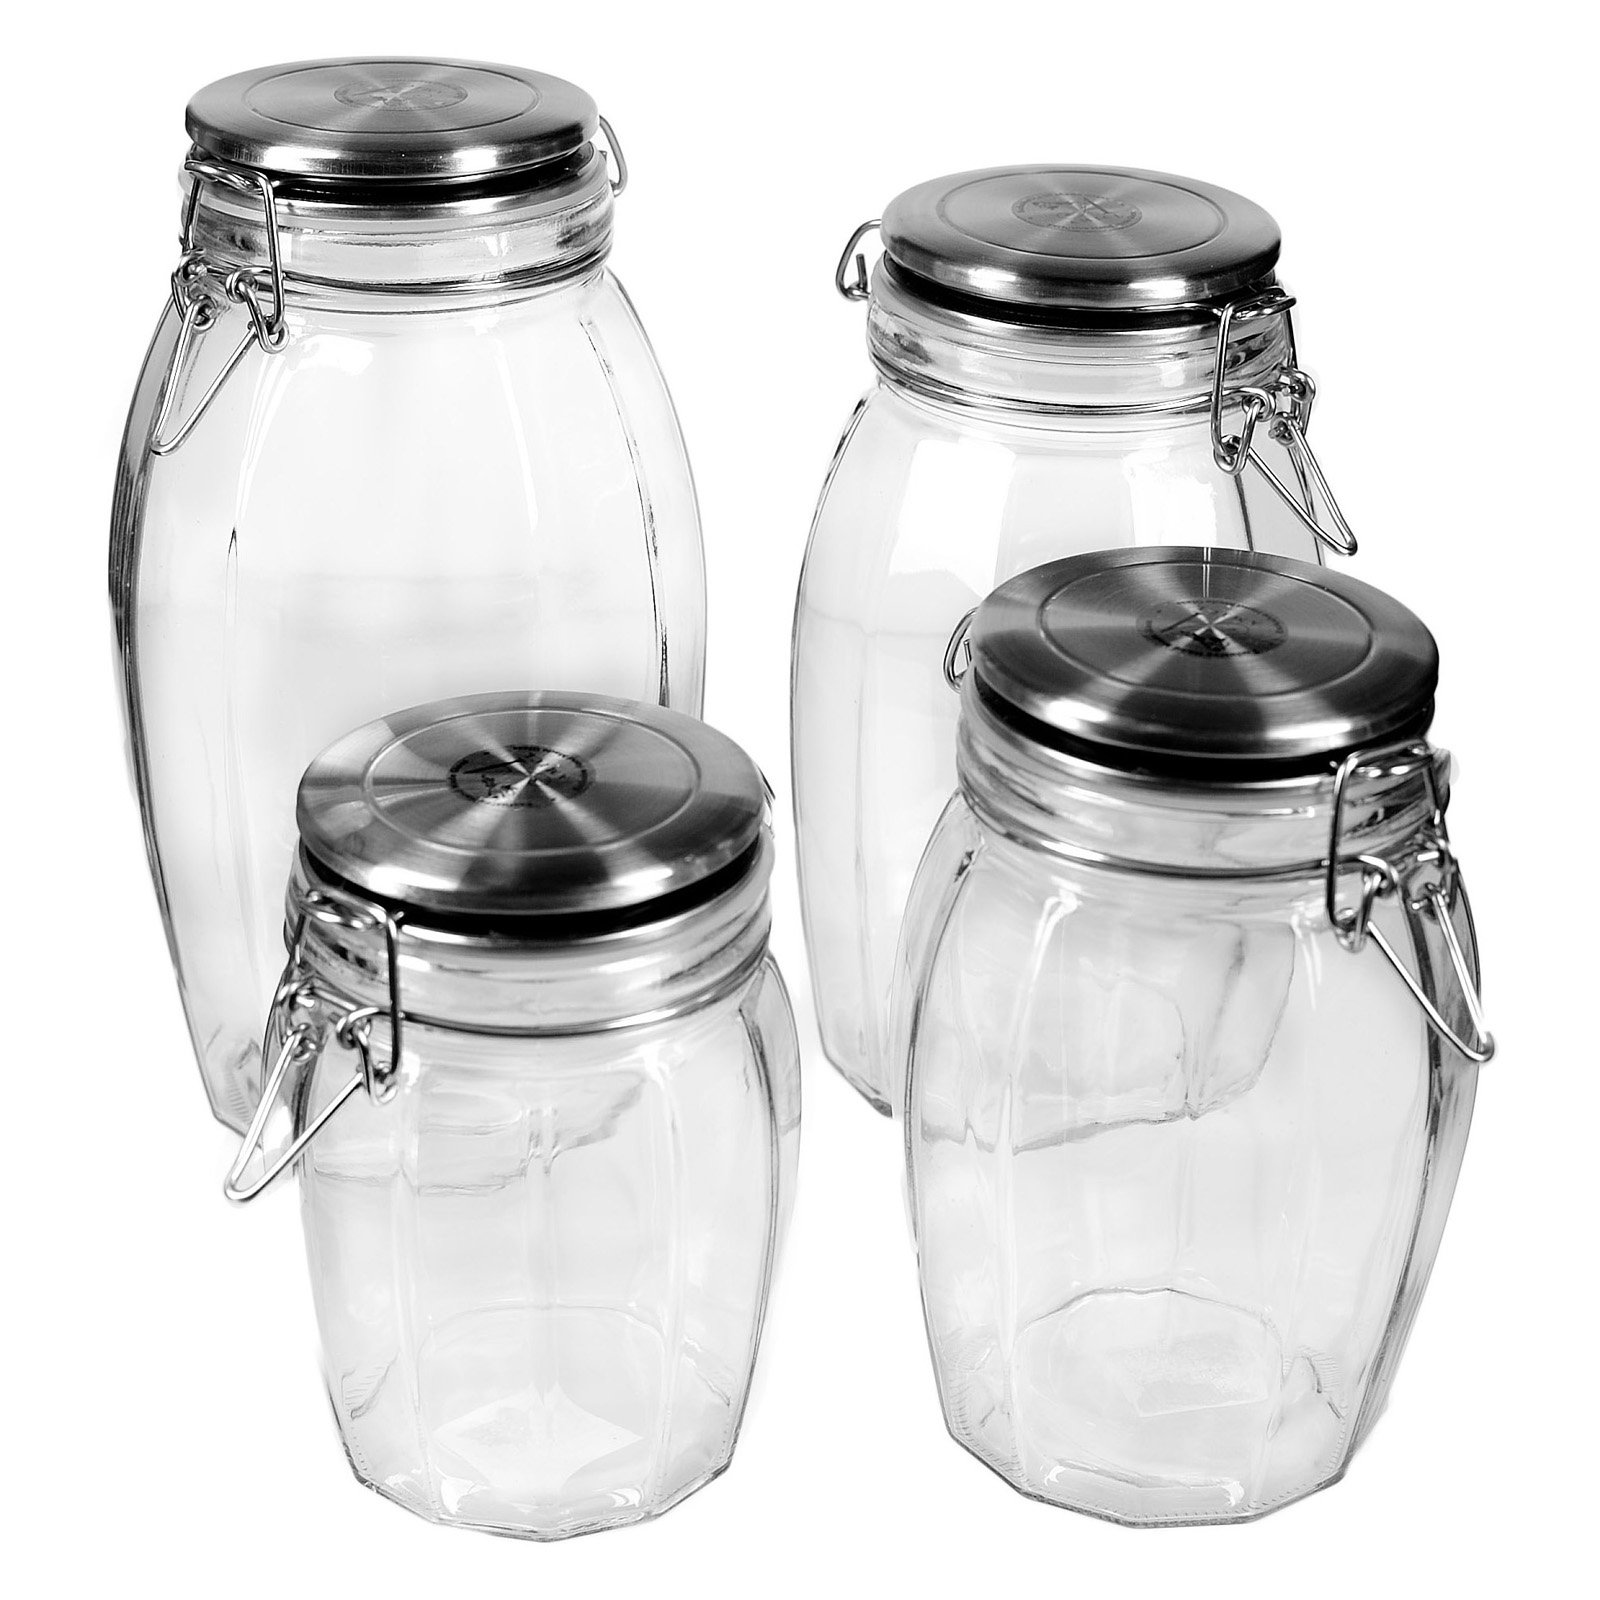 global amici lock tight glass jars set of 4 walmart com